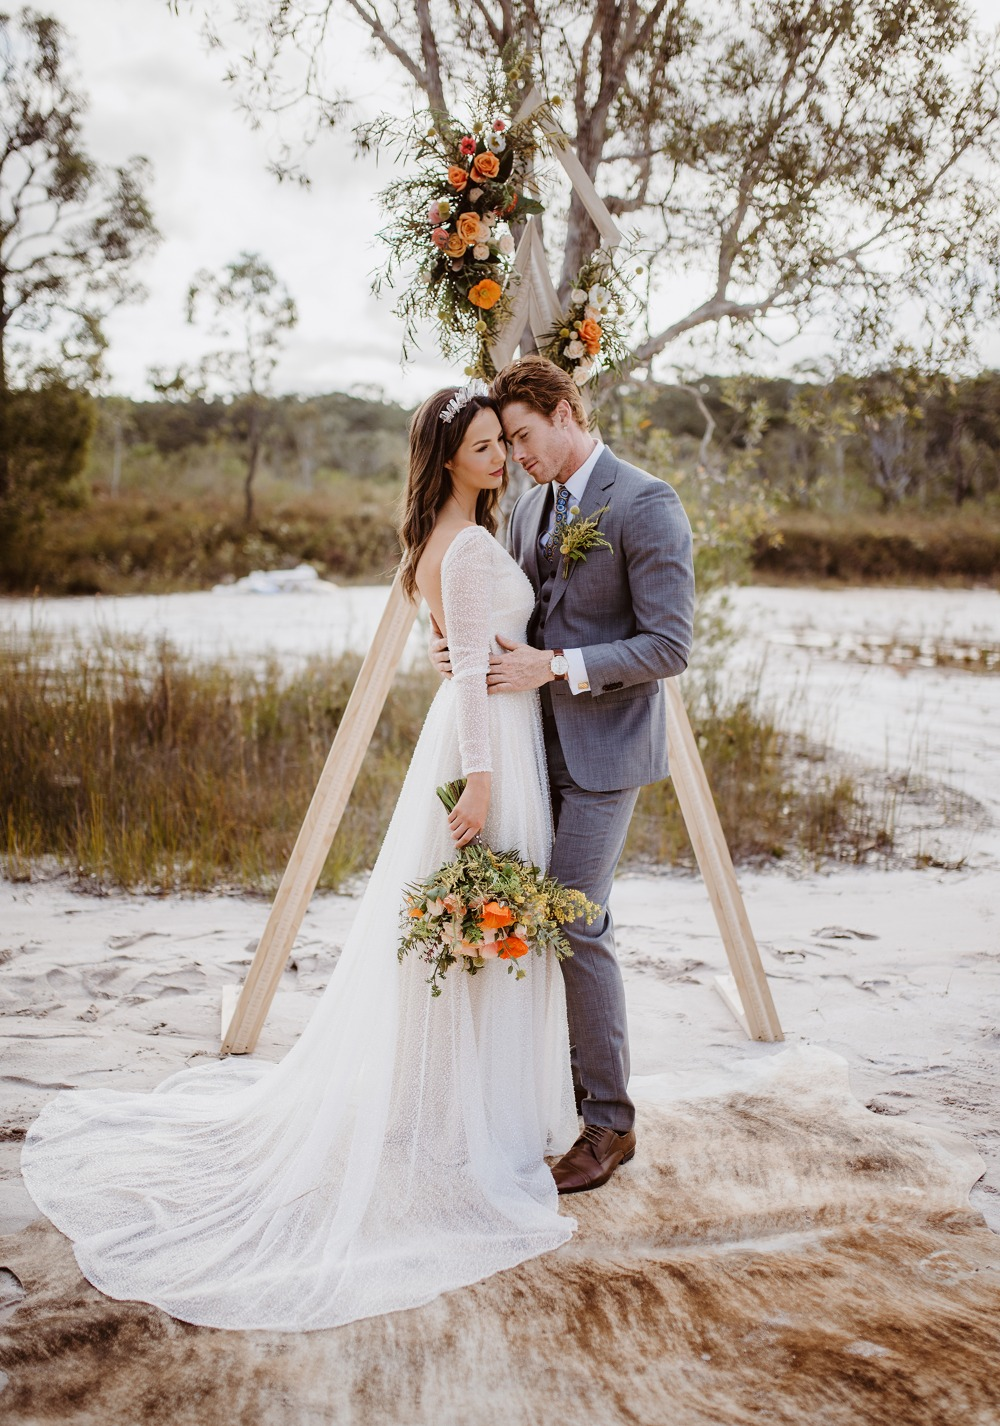 Modern boho wedding ideas